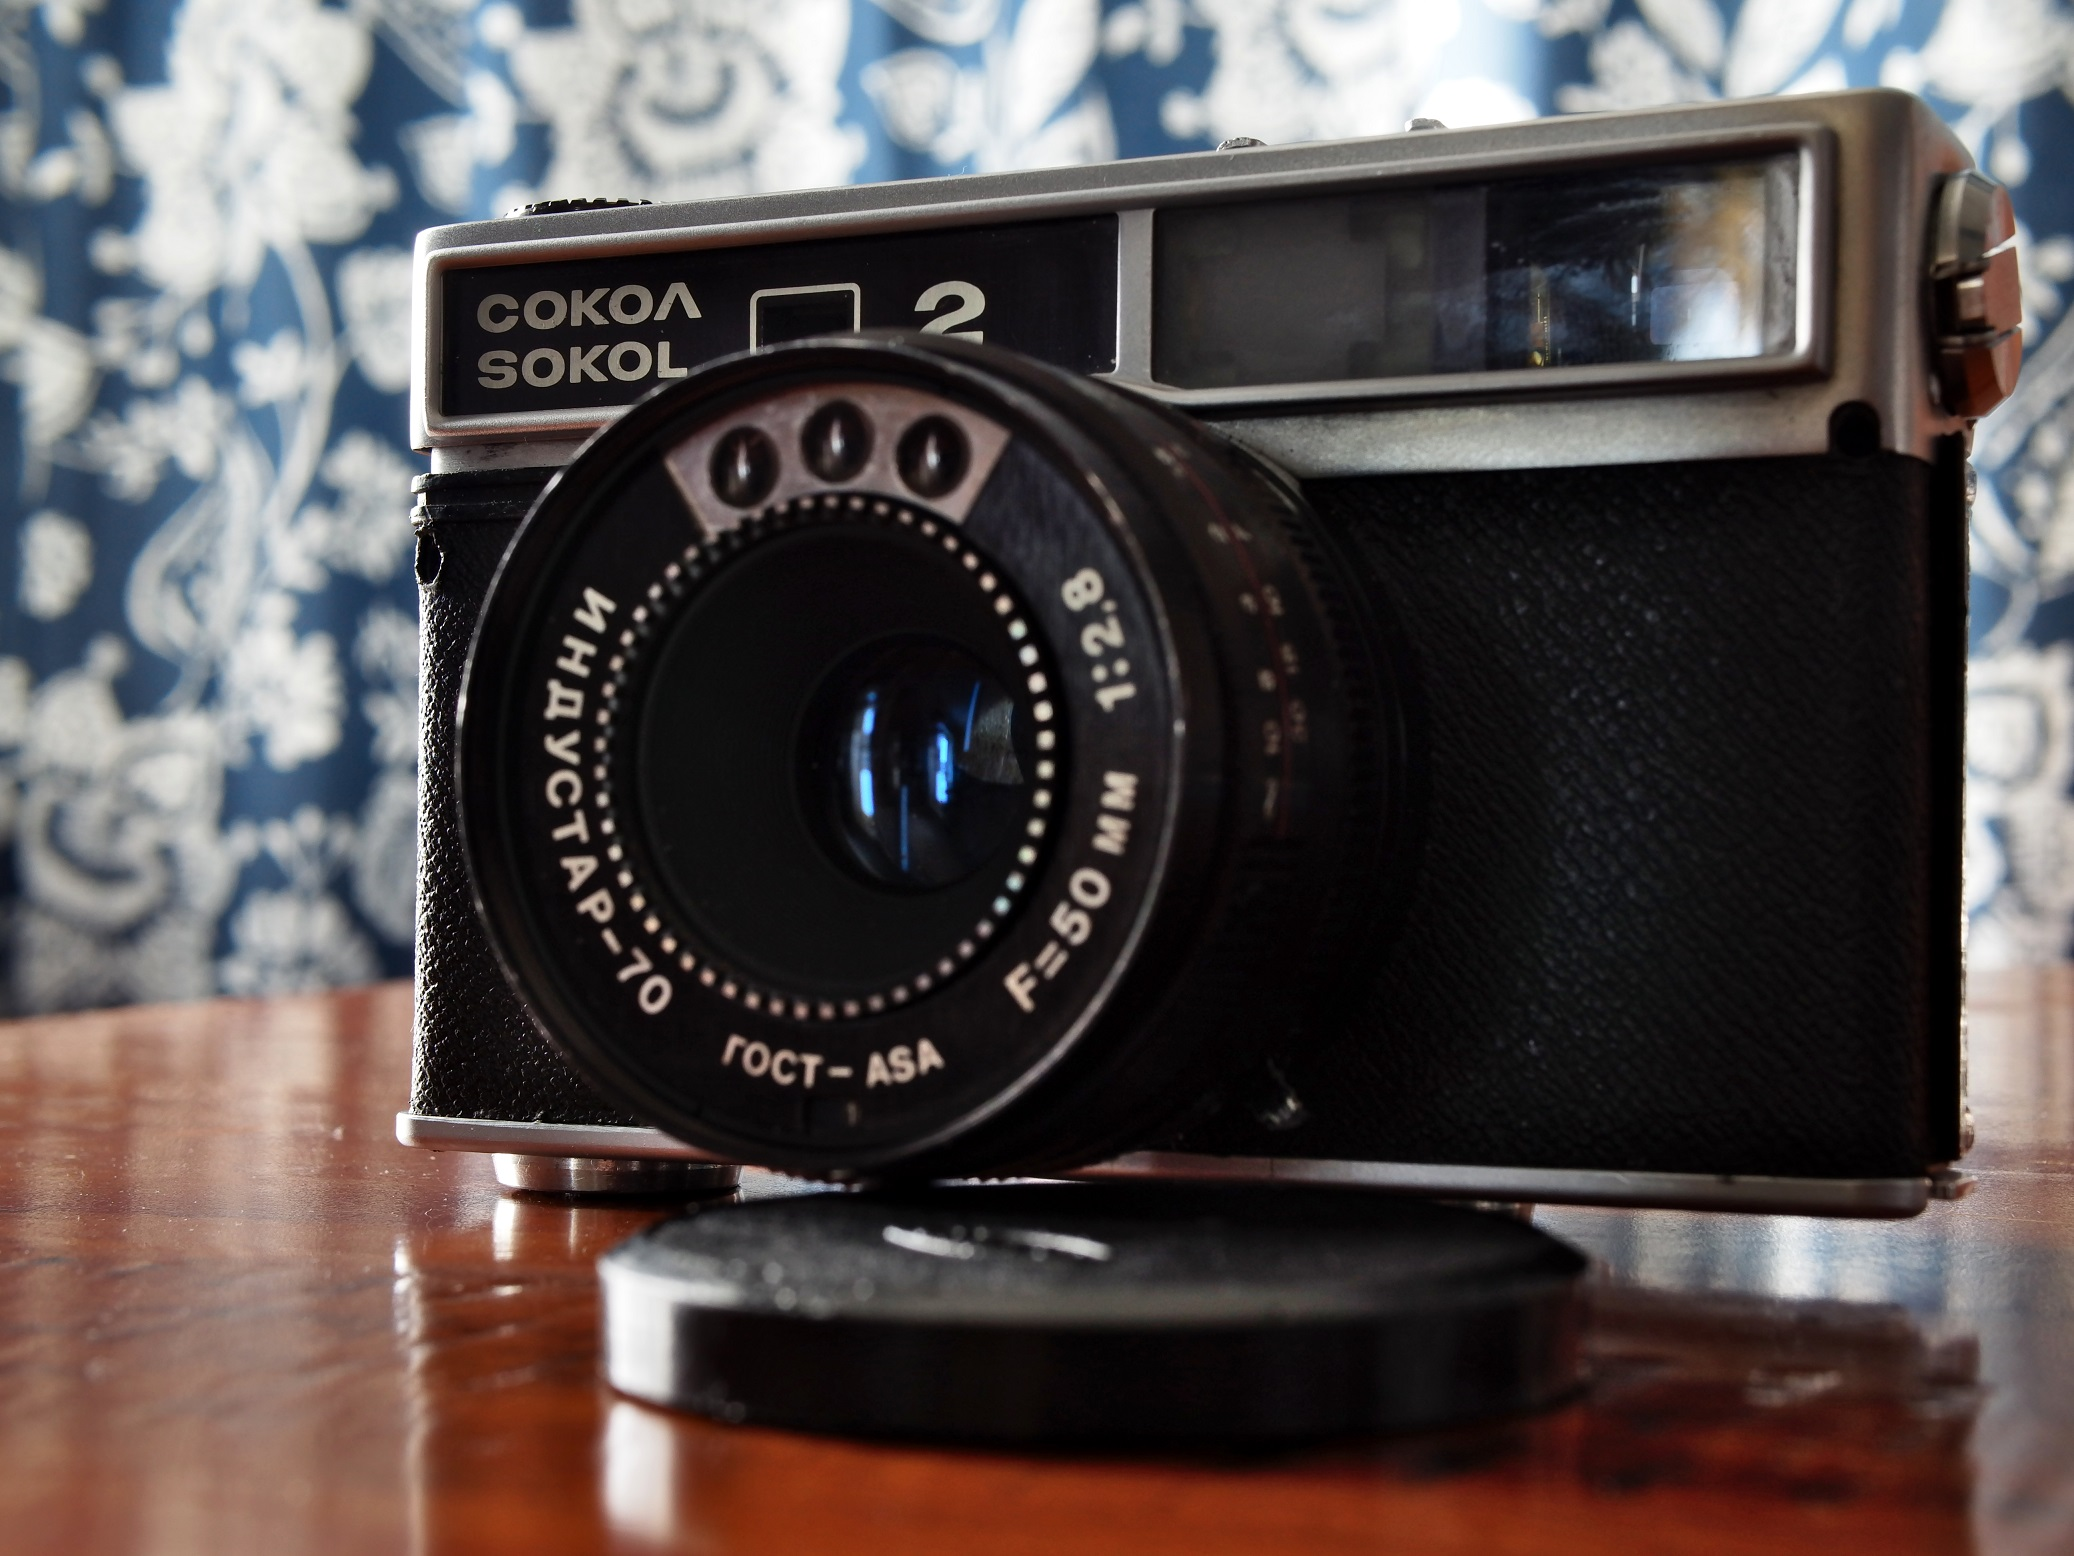 Lomo Sokol-2 camera (Pic: Anthony Fisk)